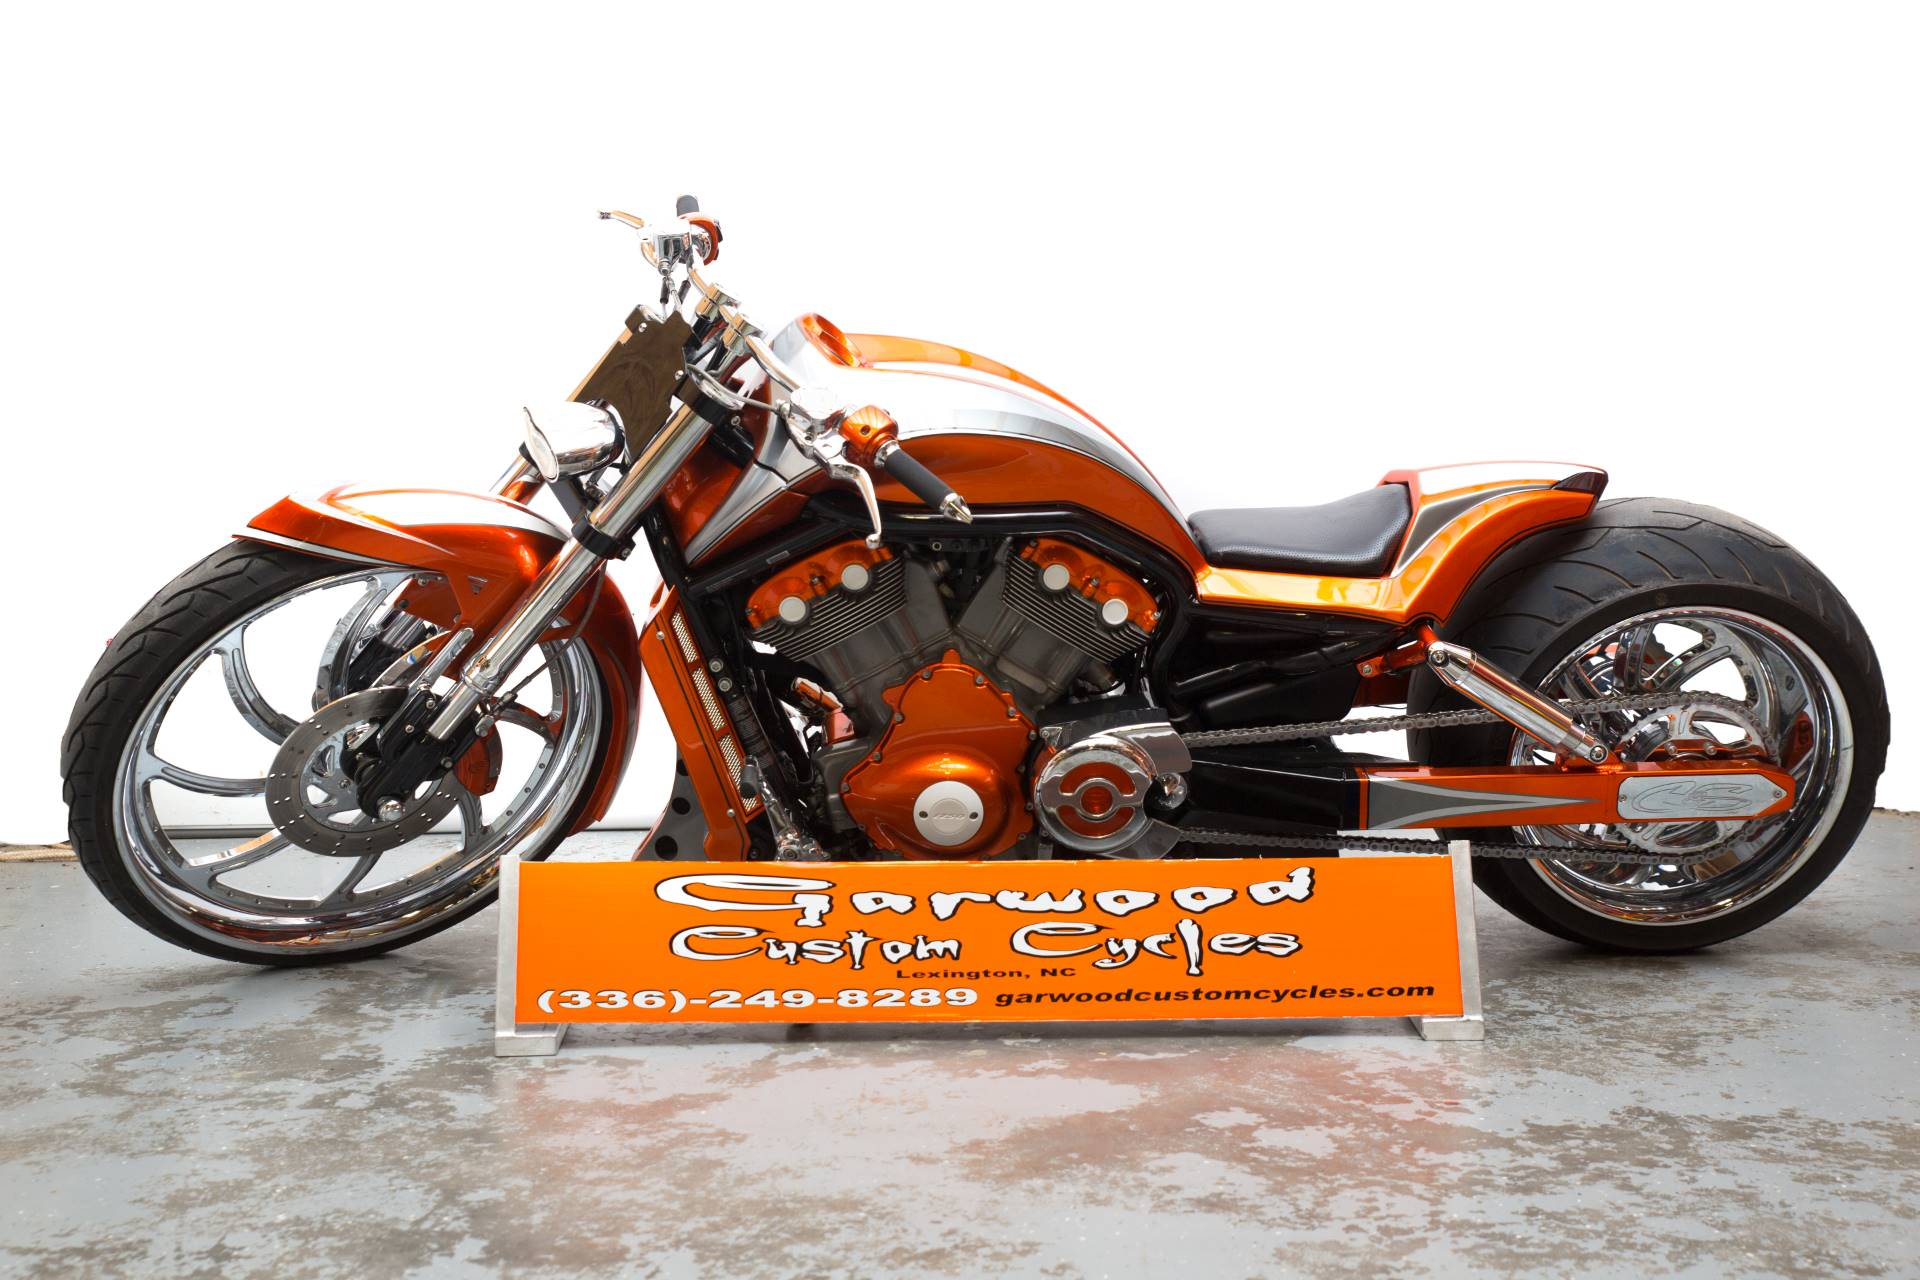 2013 Harley Davidson V-ROD MUSCLE in Lexington, North Carolina - Photo 2